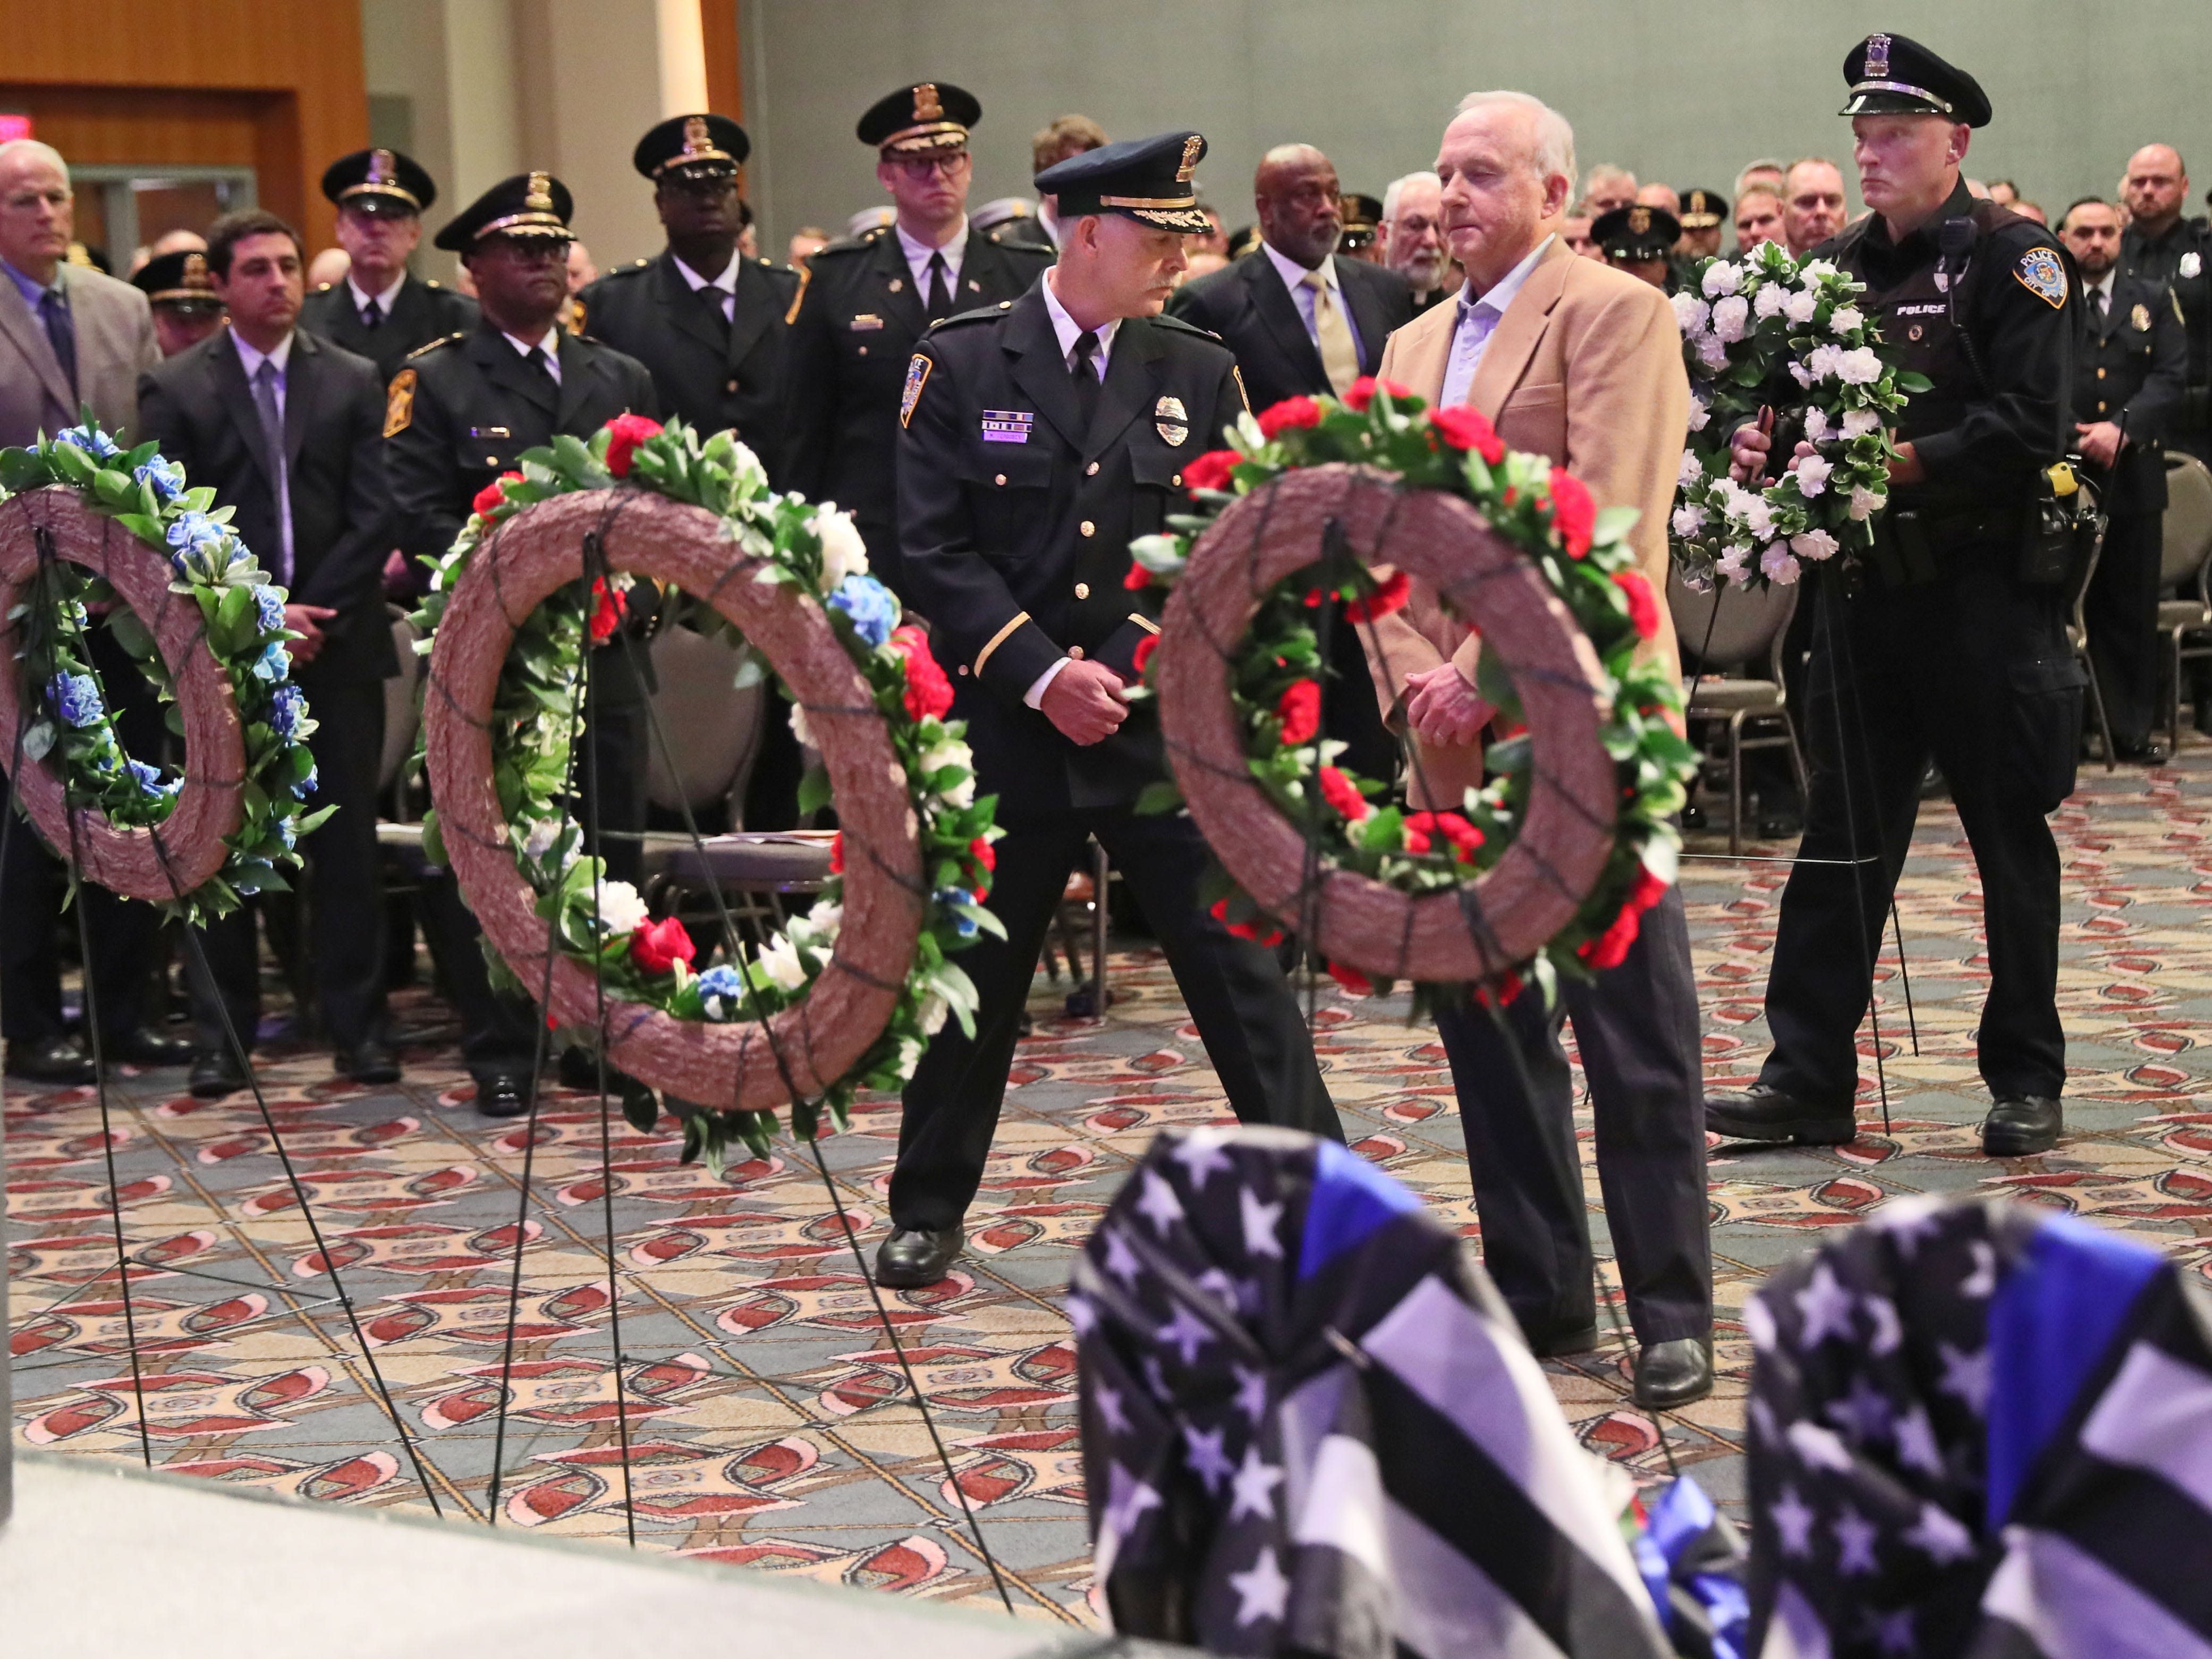 Don Hedbany, center, prepares to lay a wreath in memory of Glendale Police Officer Ron Hedbany. He was accompanied by Police Officer Jeffrey Musialowski, right, and Glendale Chief of Police Mark Ferguson, left.